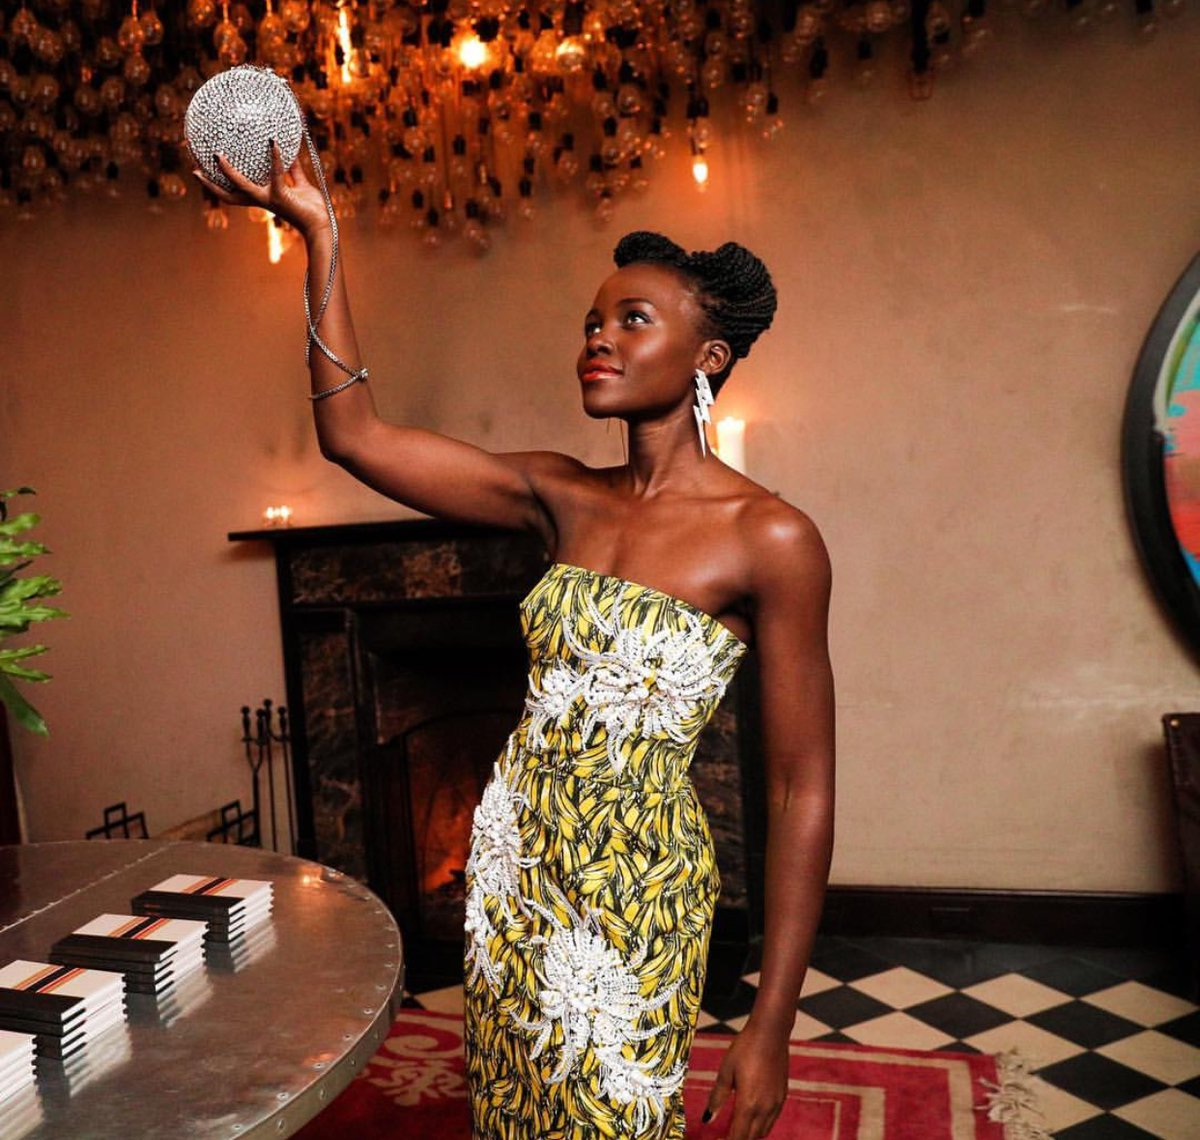 Lupita Nyong'o at Micaela Erlanger's 'How to Accessorize' book launch via Instagram @lupitanyongo